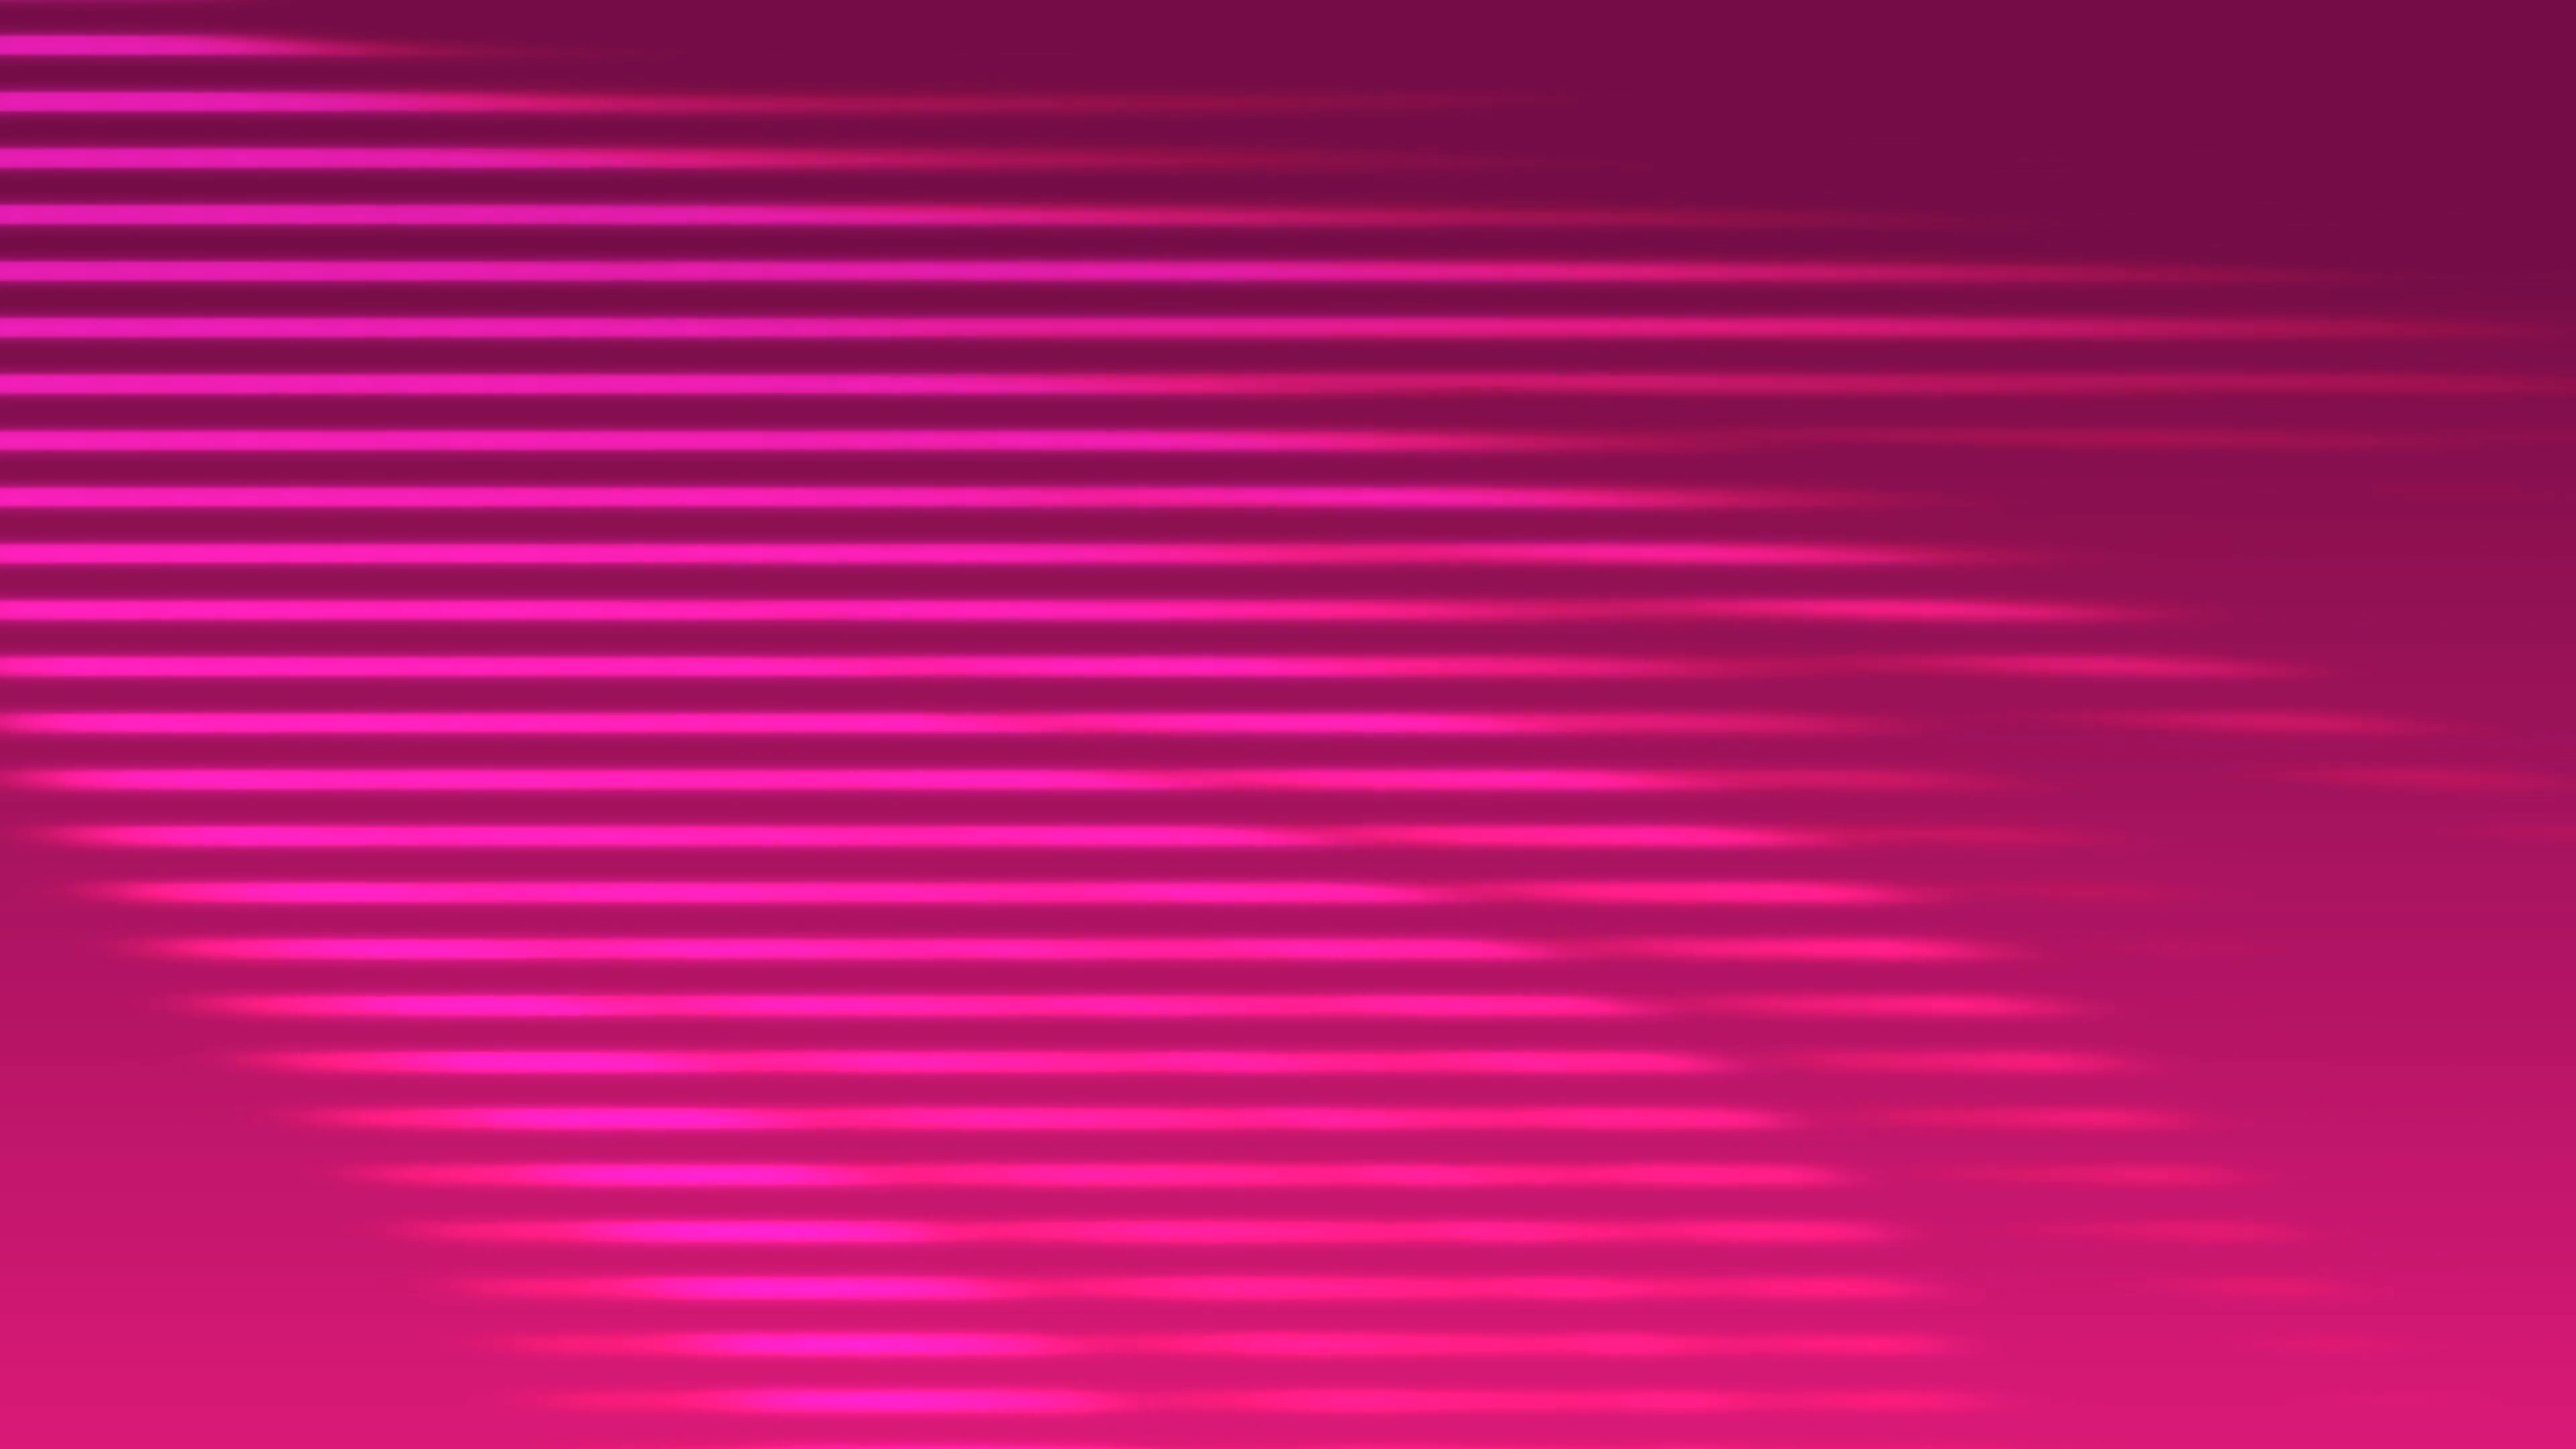 3840x2160 Pink Horizontal Vector Lines Flow Down The Screen Creating A